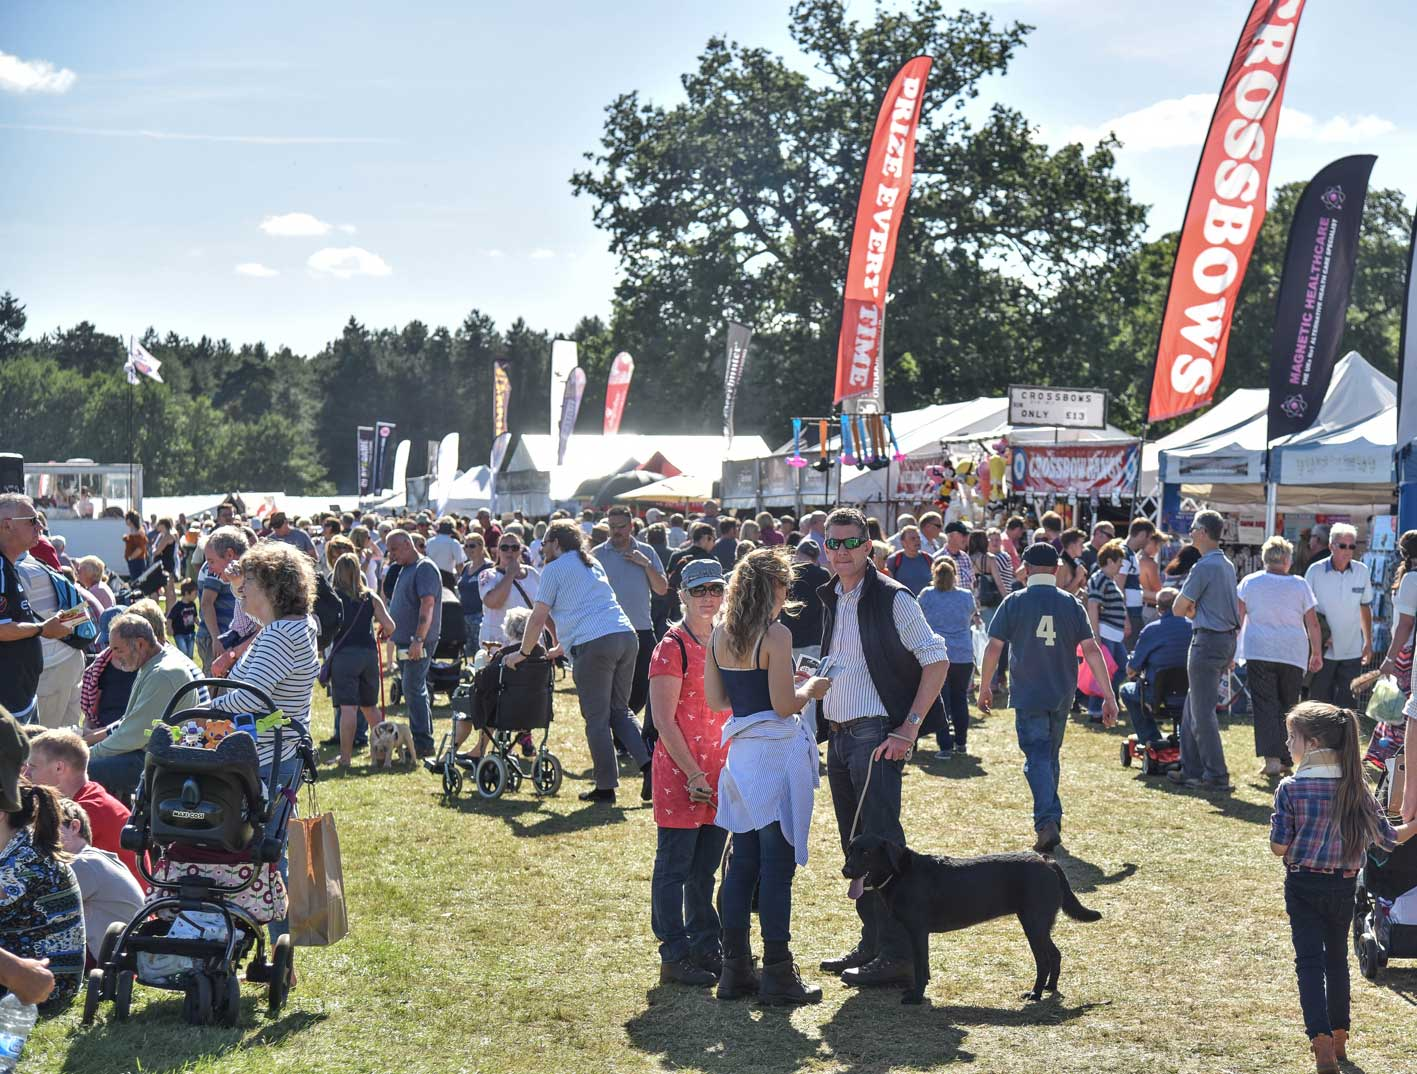 The Wiltshire Game & Country Fair